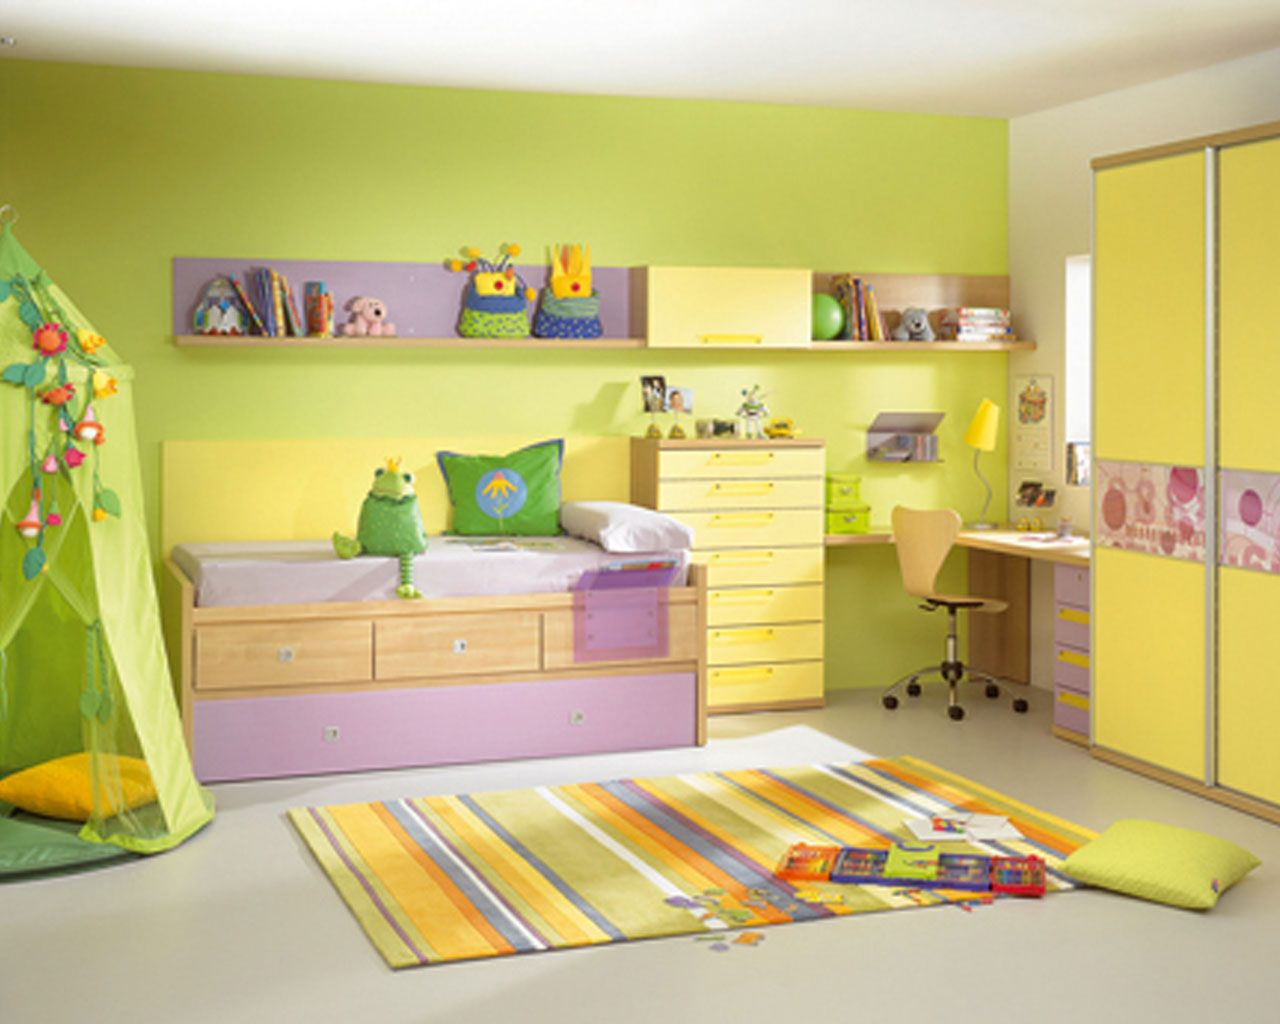 Girls Bedroom Green lime green and white themed kids room paint ideas with simple